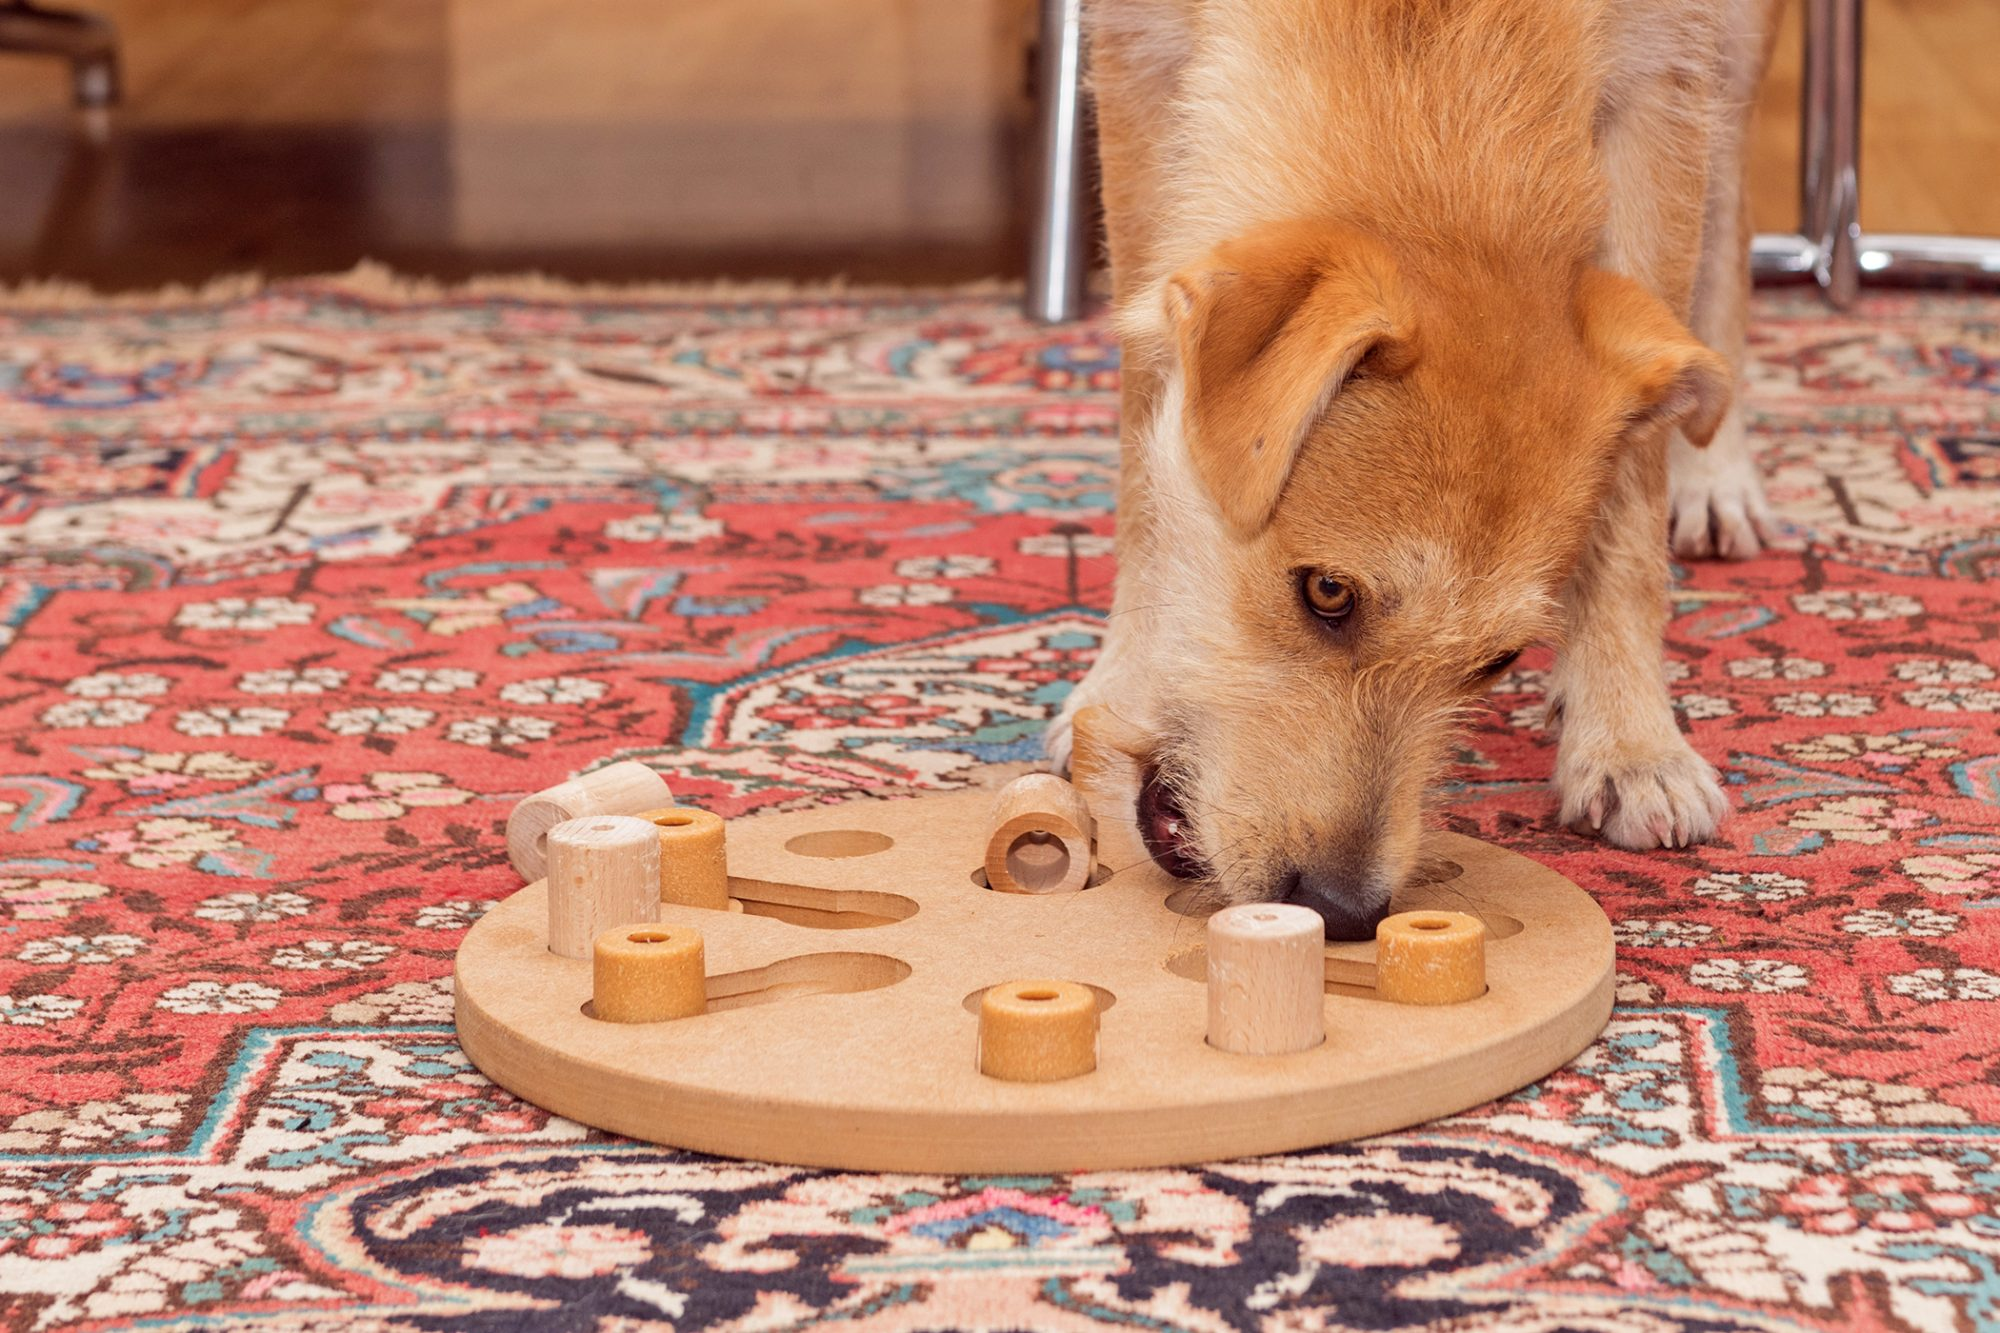 Adult dog plays with dog puzzle indoors